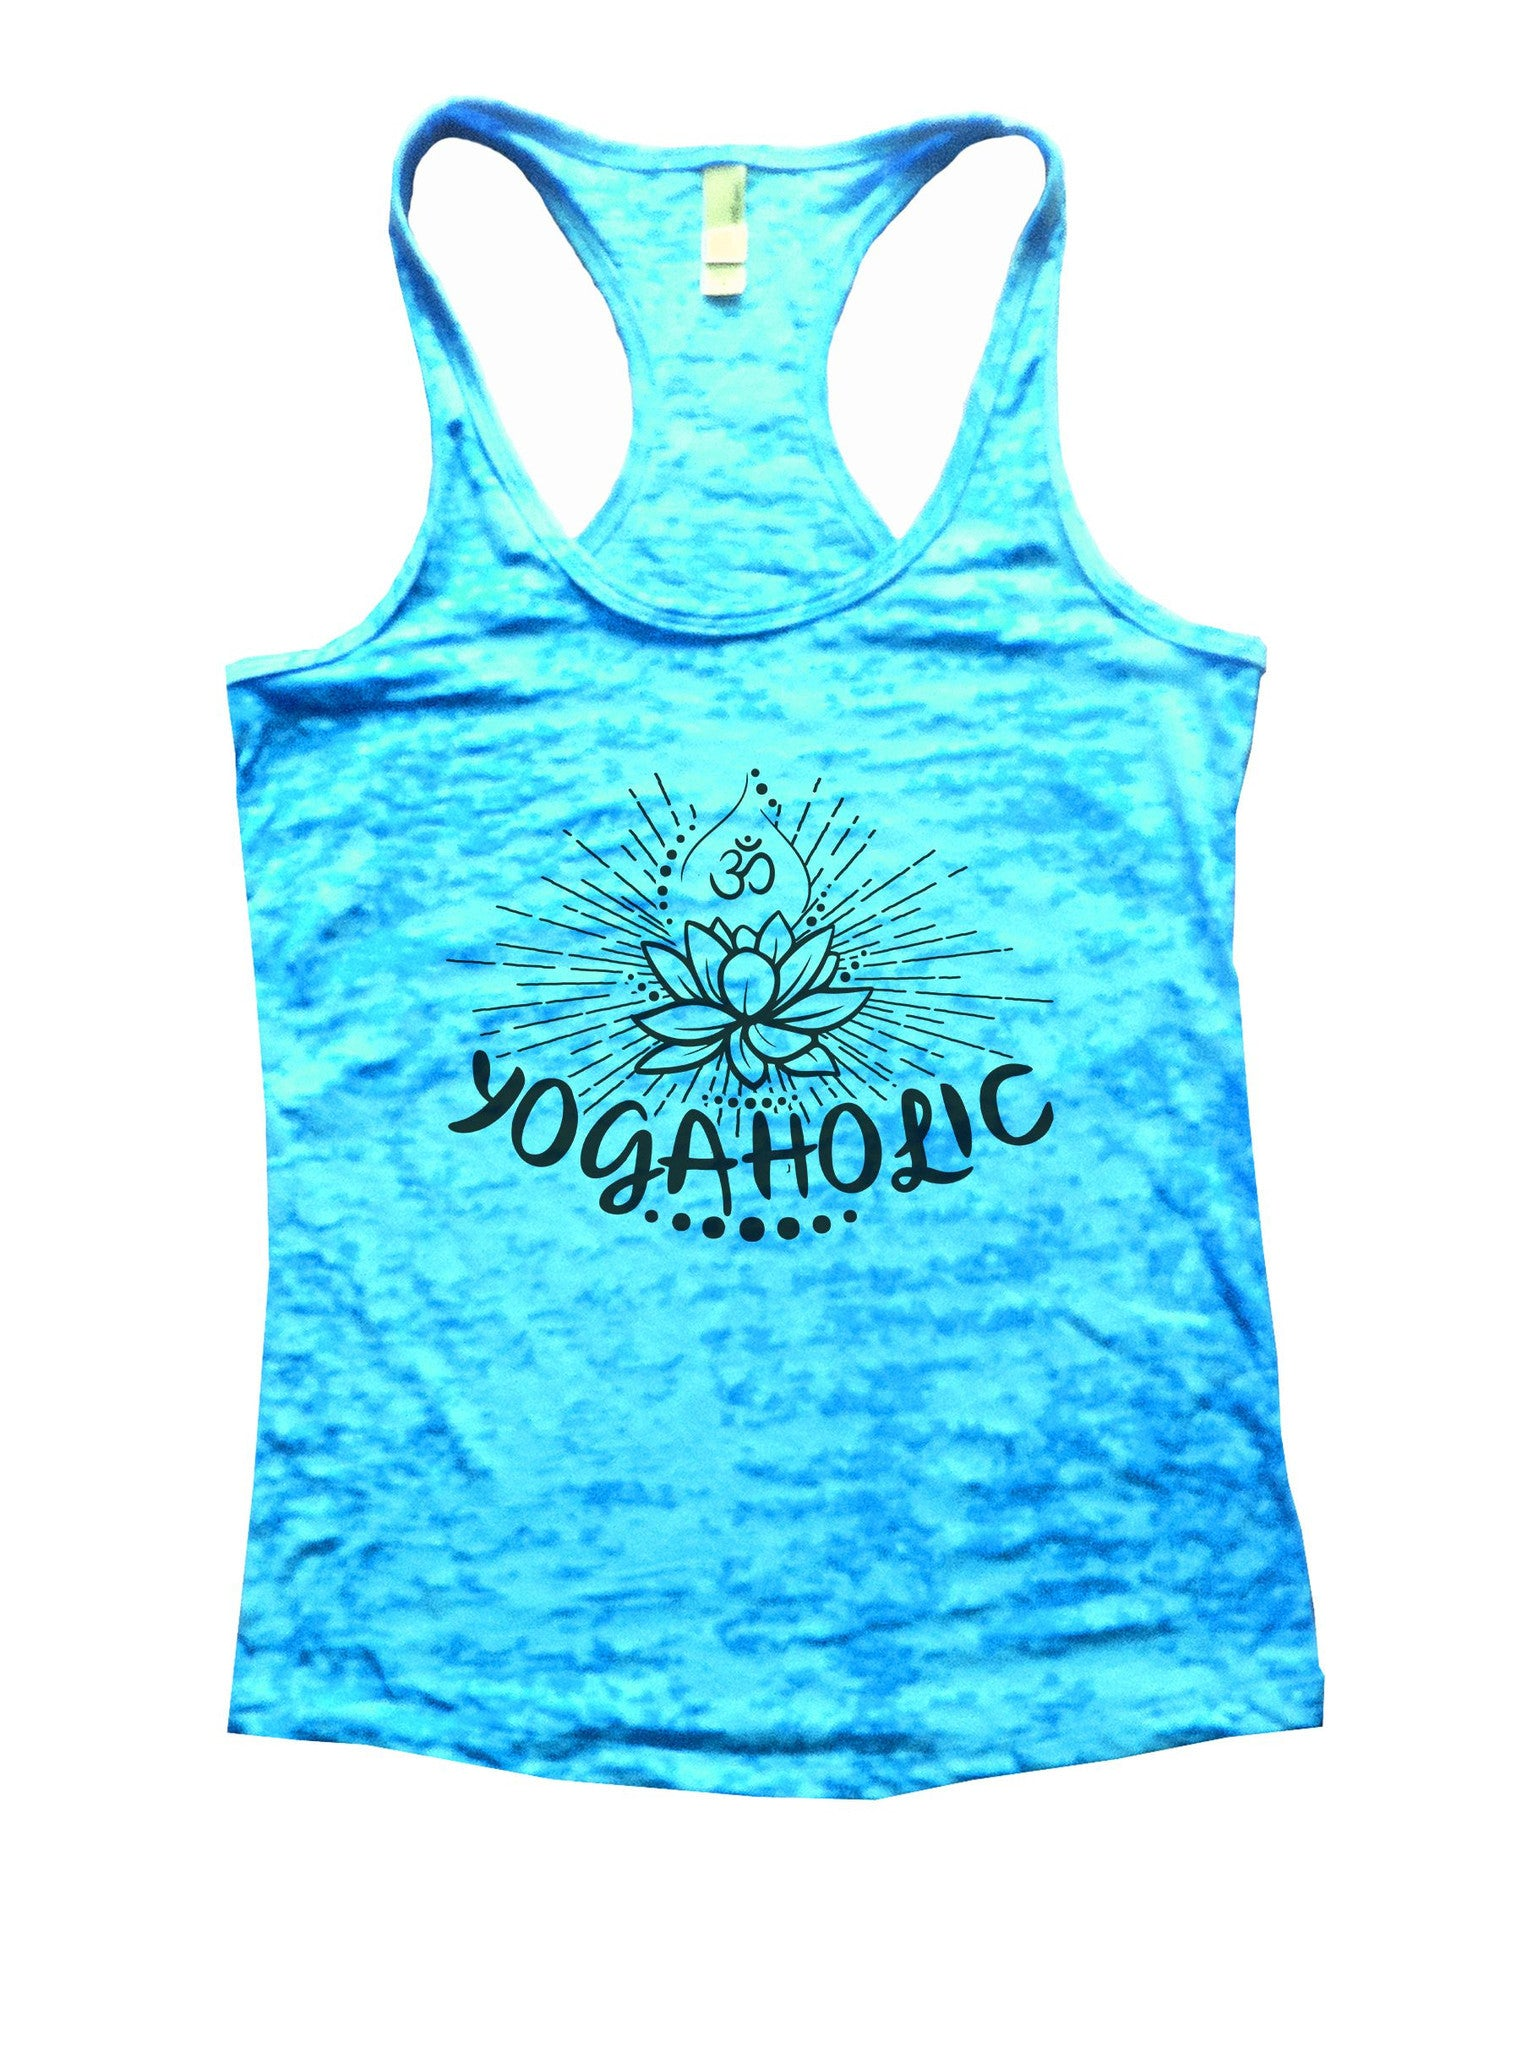 Yogaholic Burnout Tank Top By BurnoutTankTops.com - 1017 - Funny Shirts Tank Tops Burnouts and Triblends  - 4